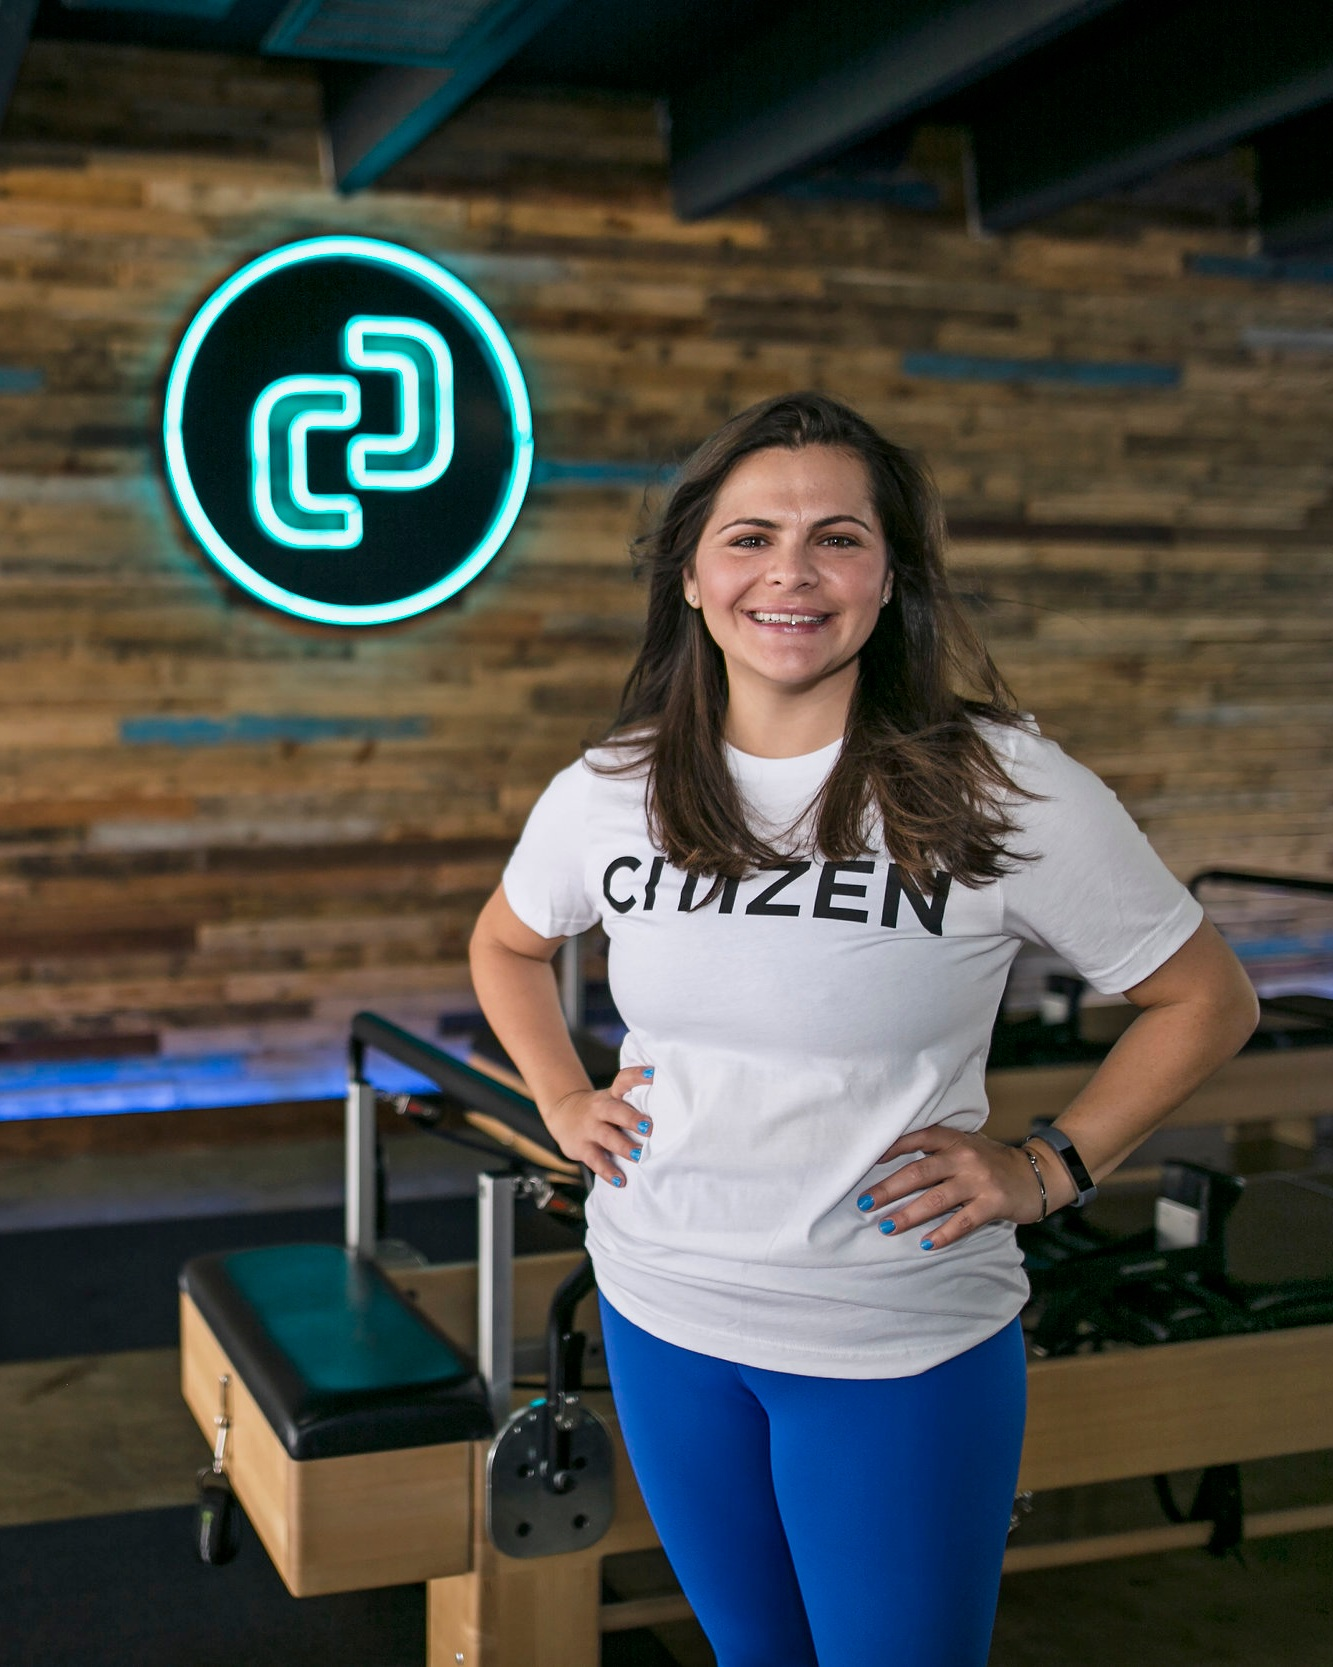 Jess Hughes - Owner of Citizens Pilates